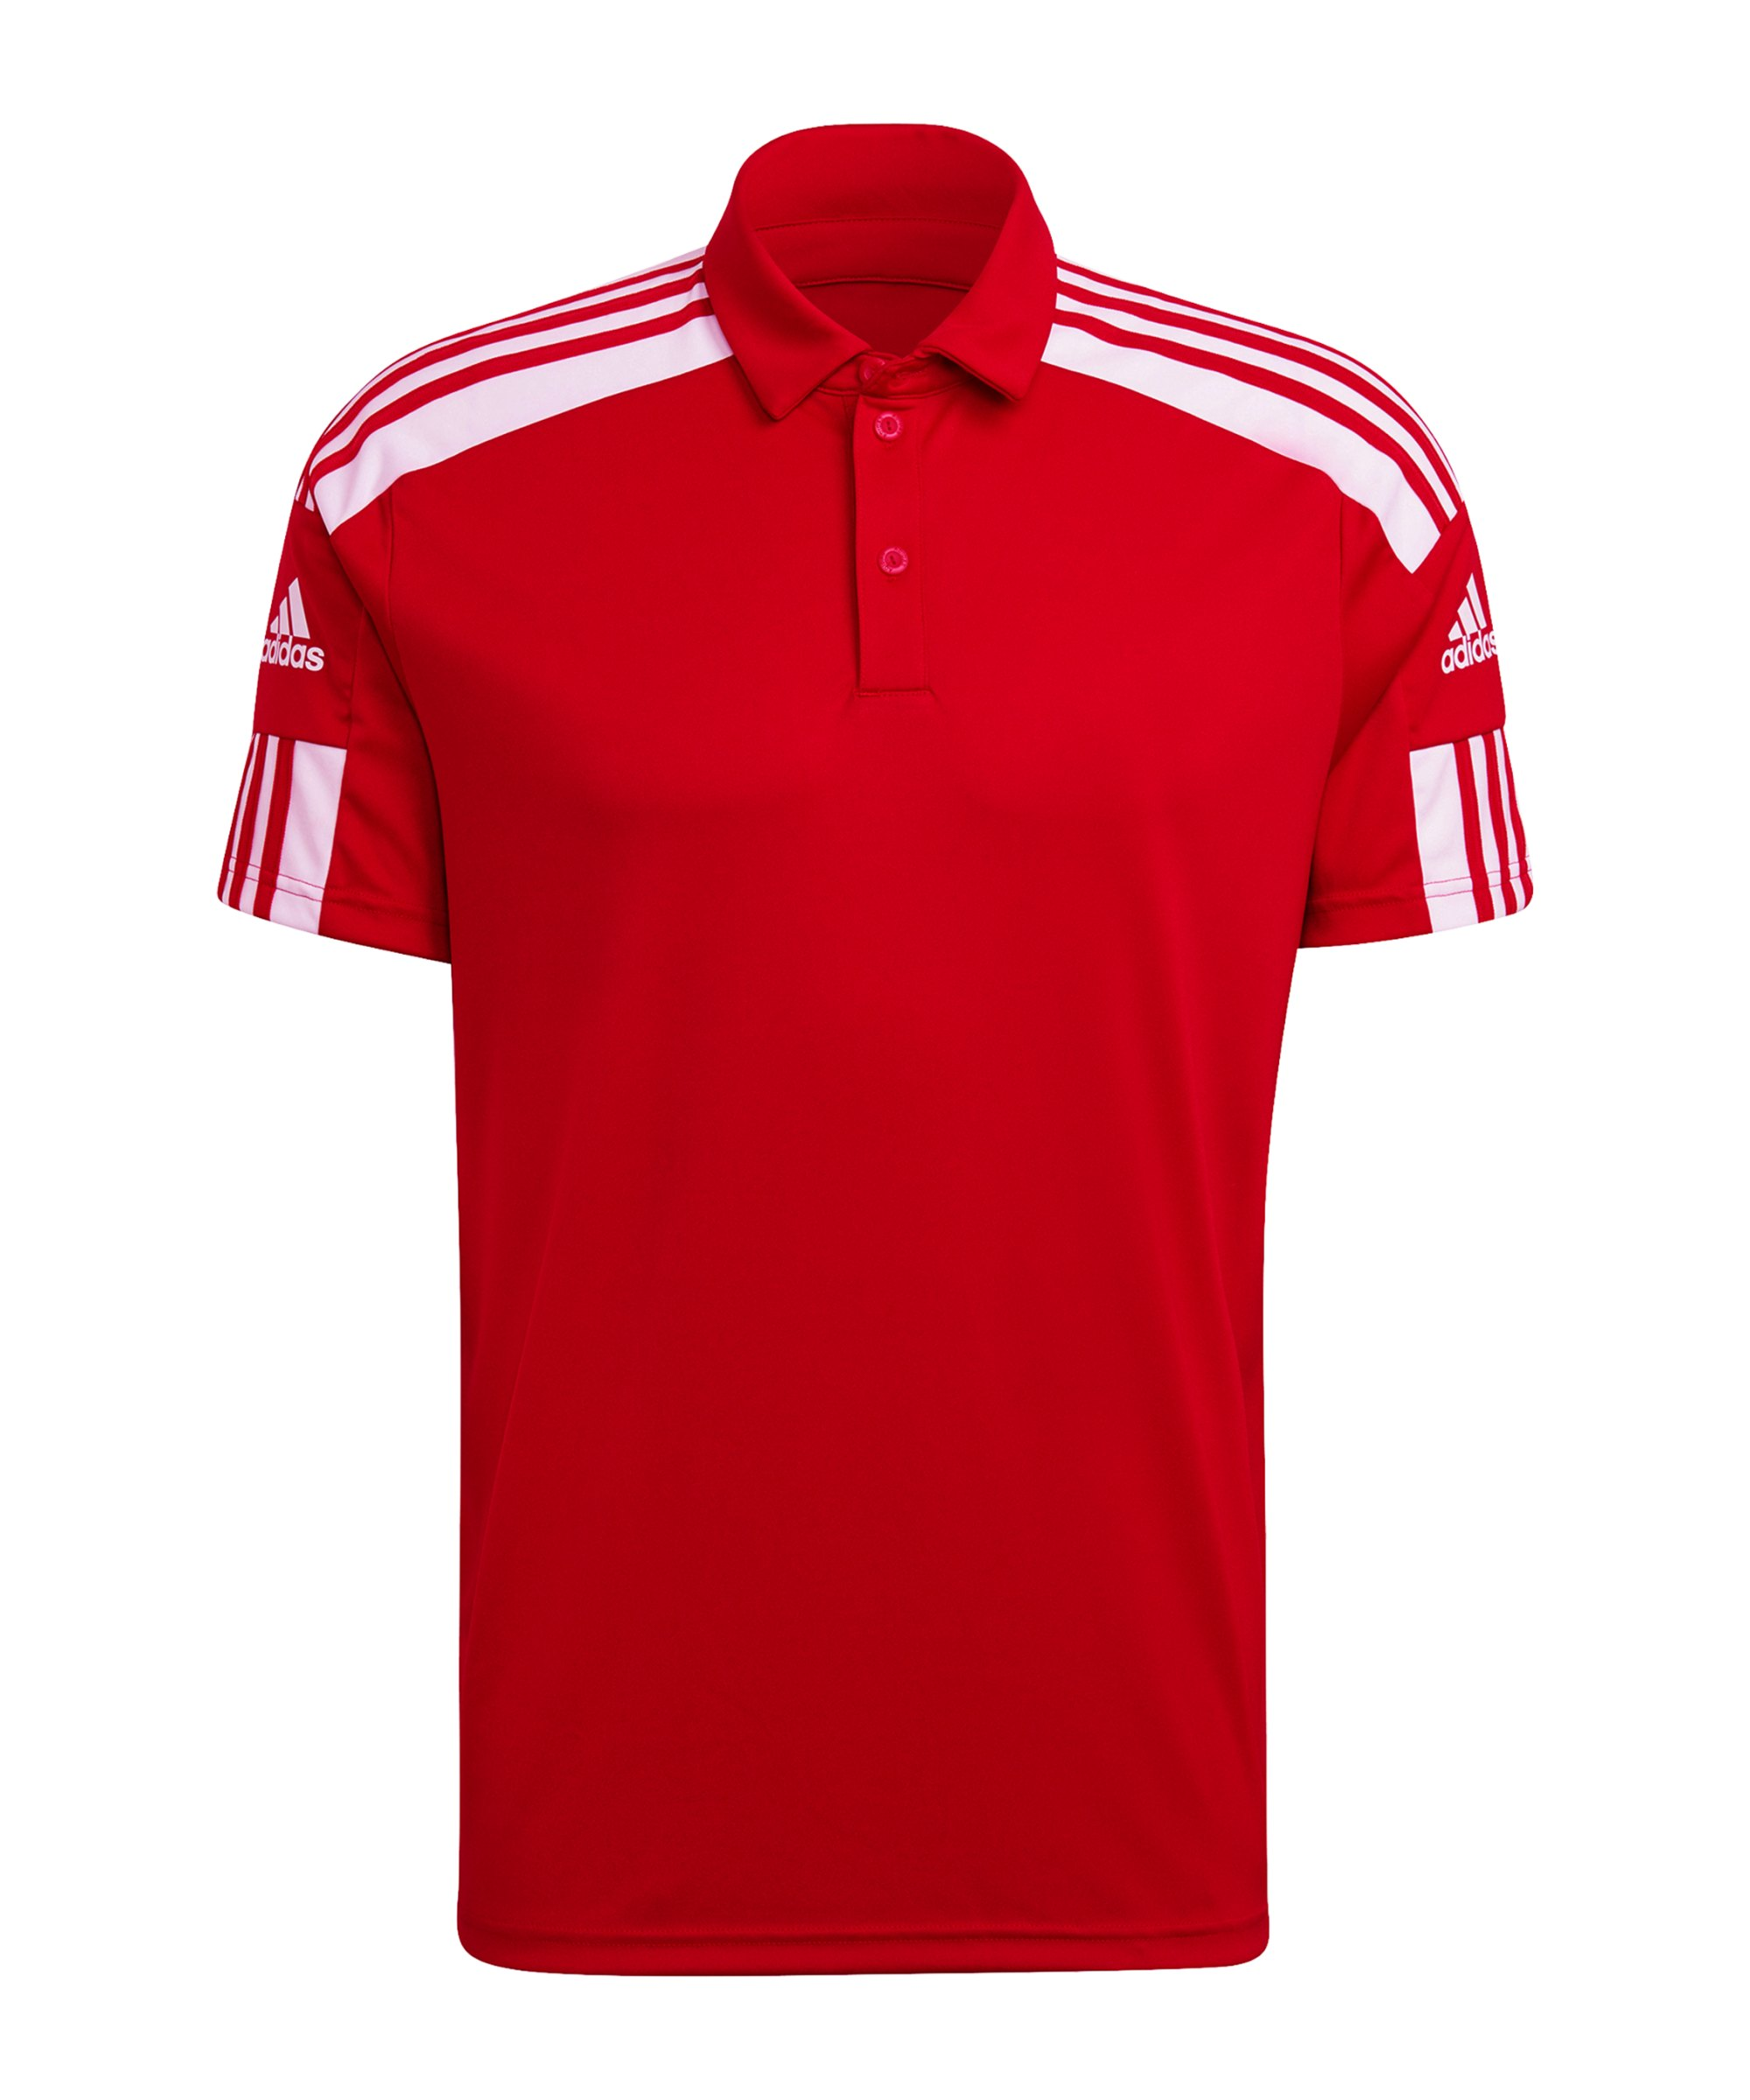 adidas Squad 21 Poloshirt Rot Weiss - rot